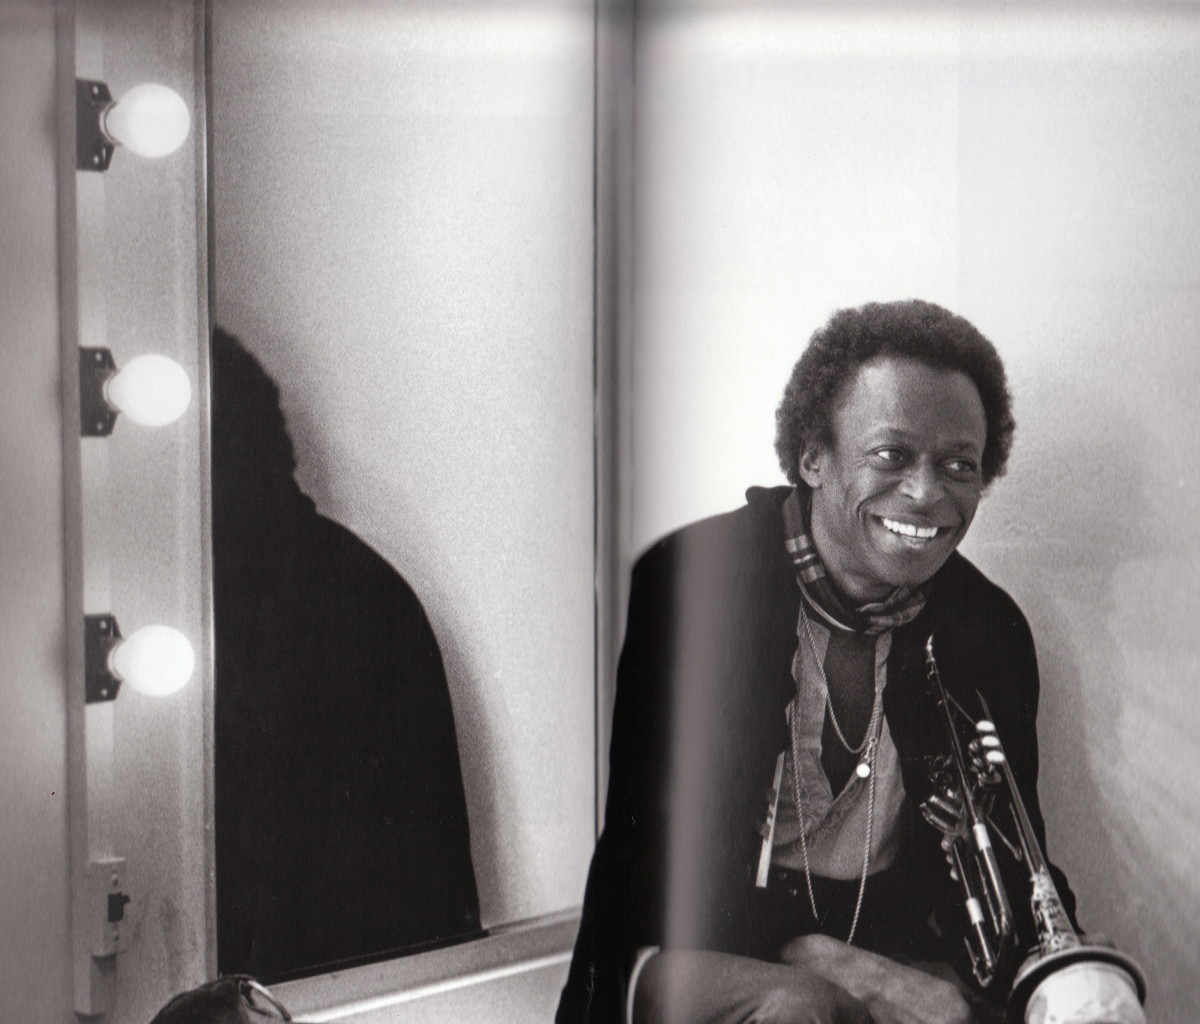 Miles Backstage at the Berkeley Community Theater, 1971.